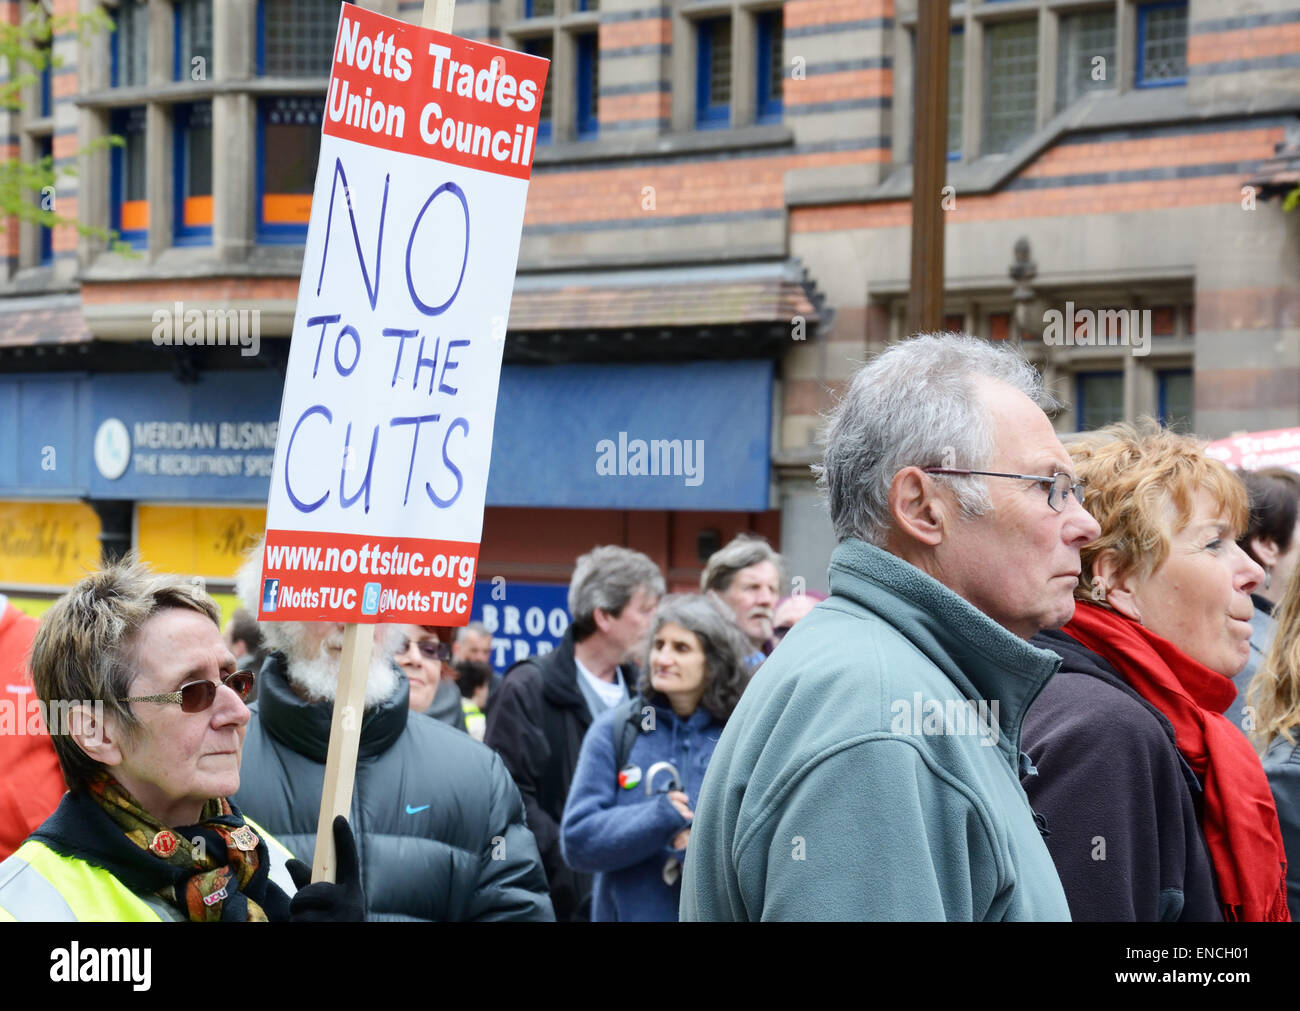 Placard at Political rally, Nottingham, England. - Stock Image